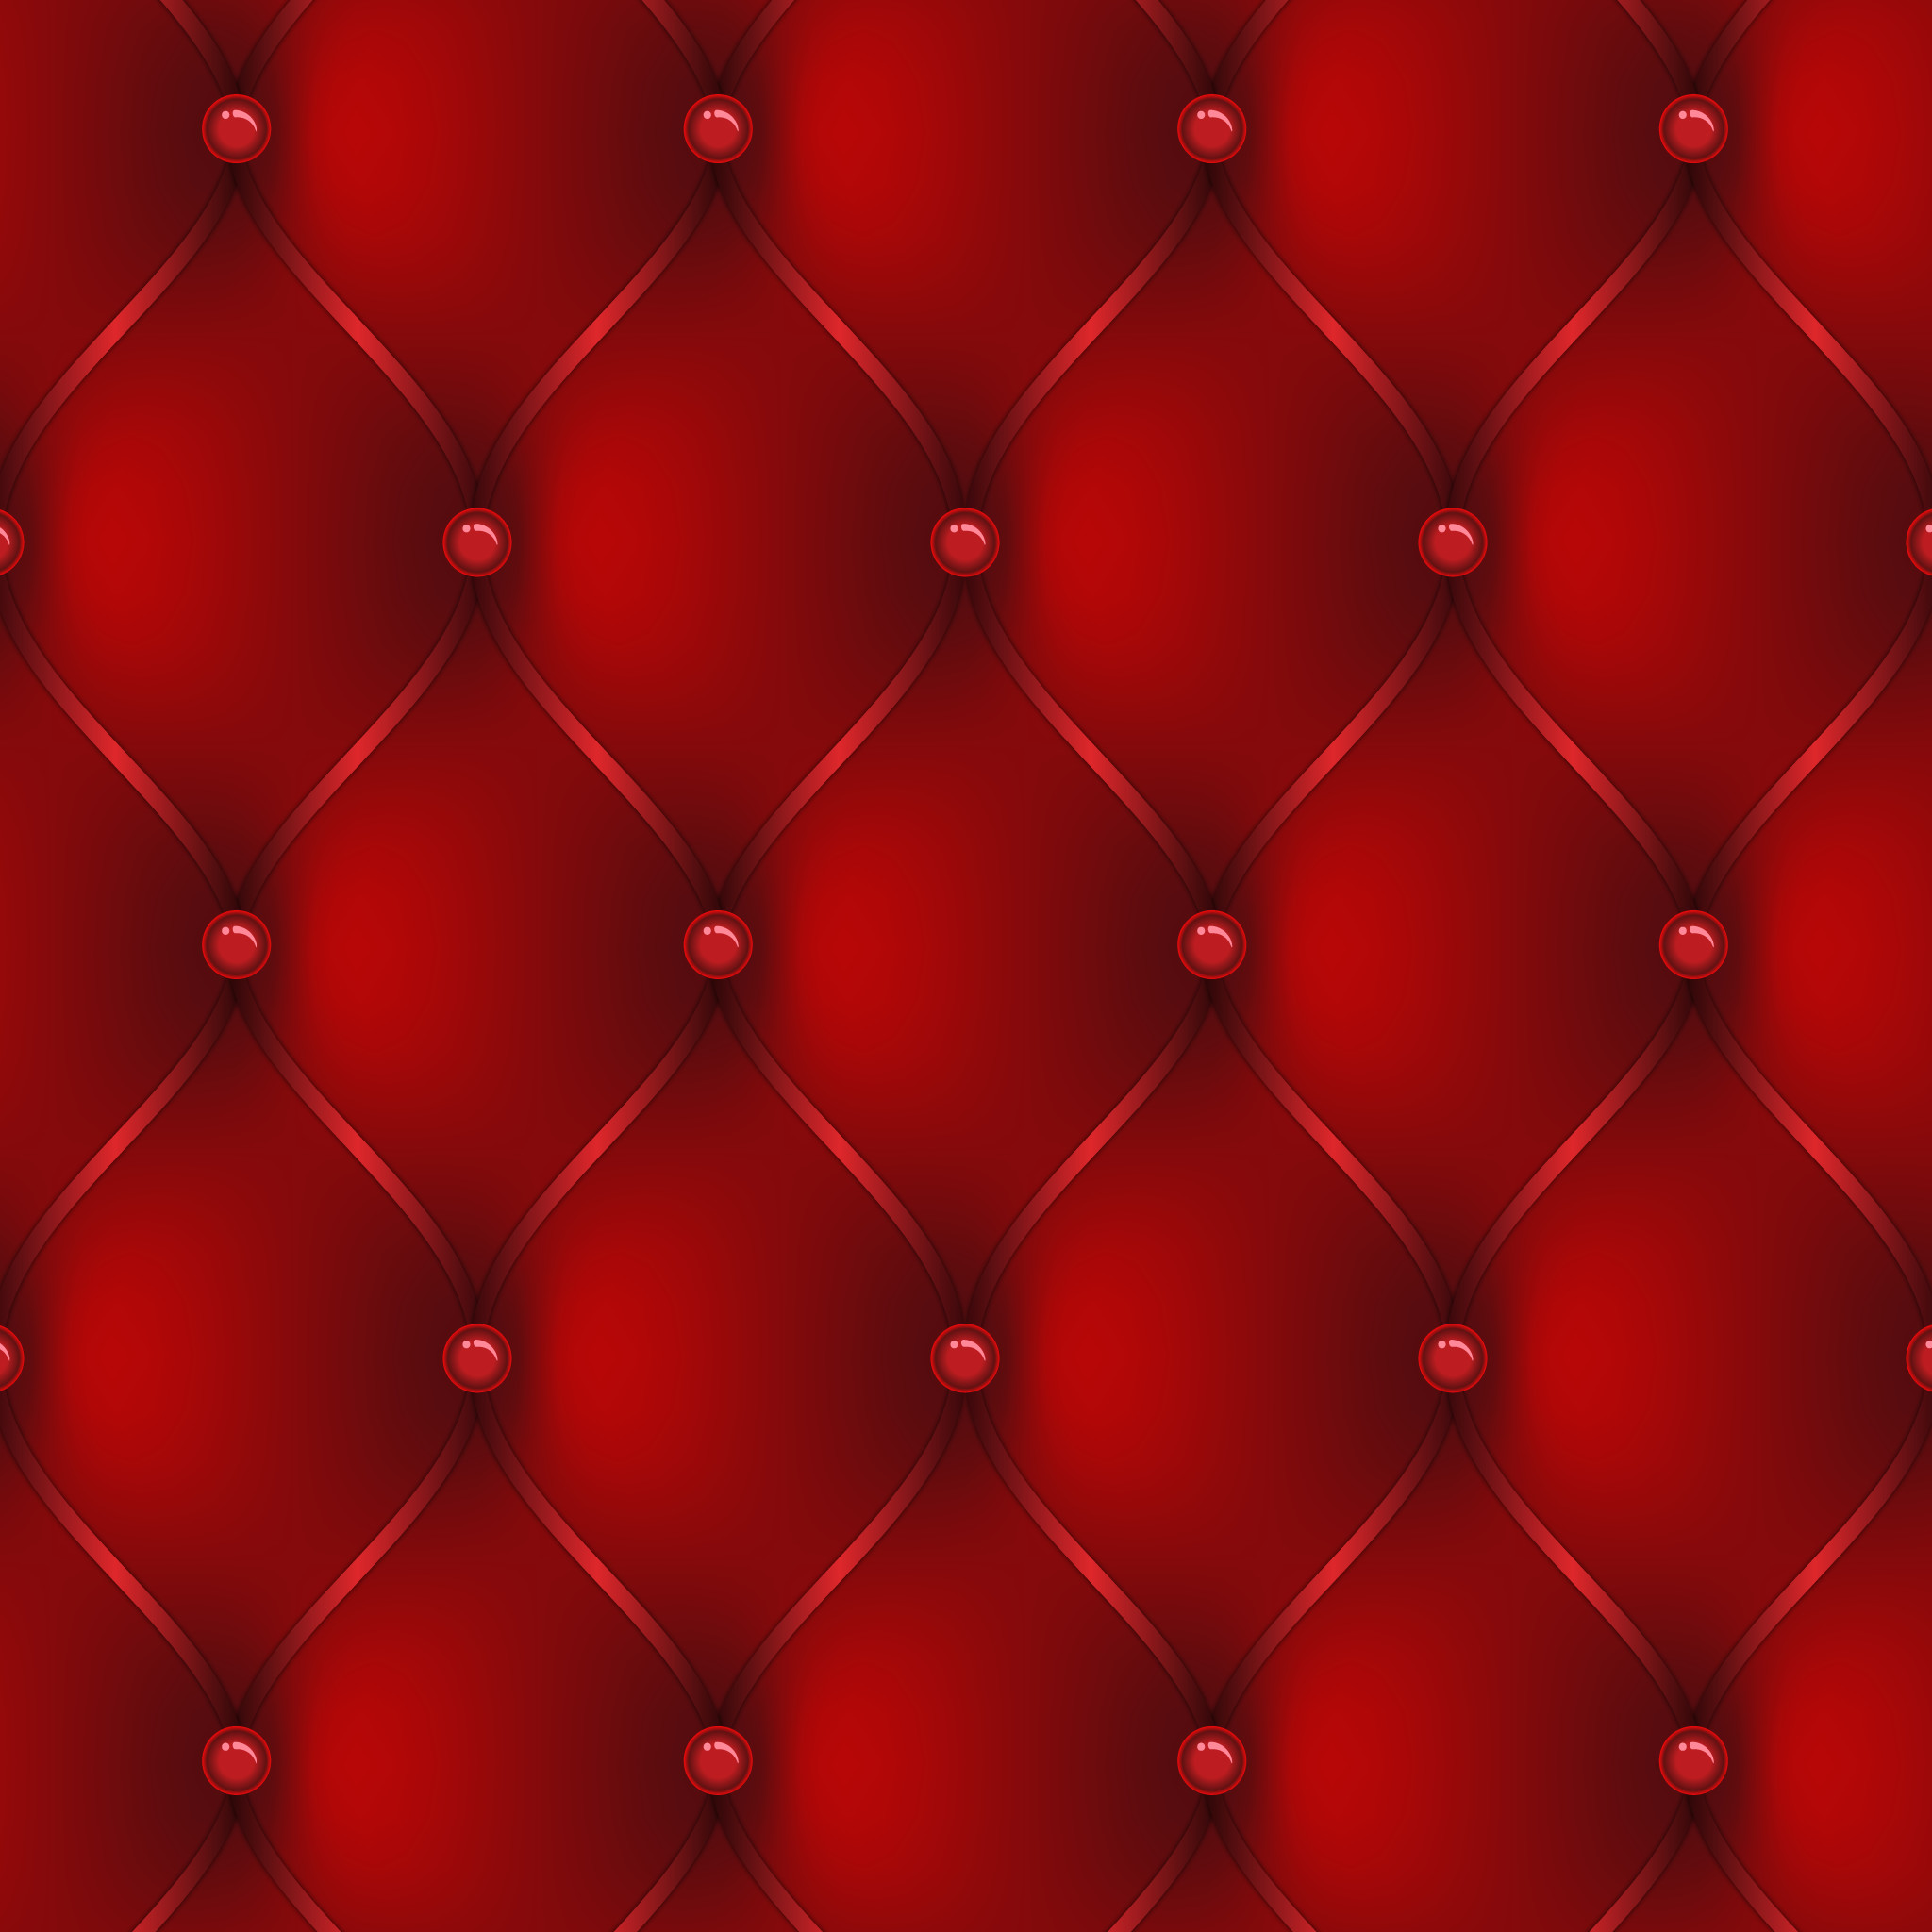 Add your own sense of style to your iPad screen with this nice upholstery leather  wallpaper. Background resolution: 2048 x 2048 pixels Retina display: …